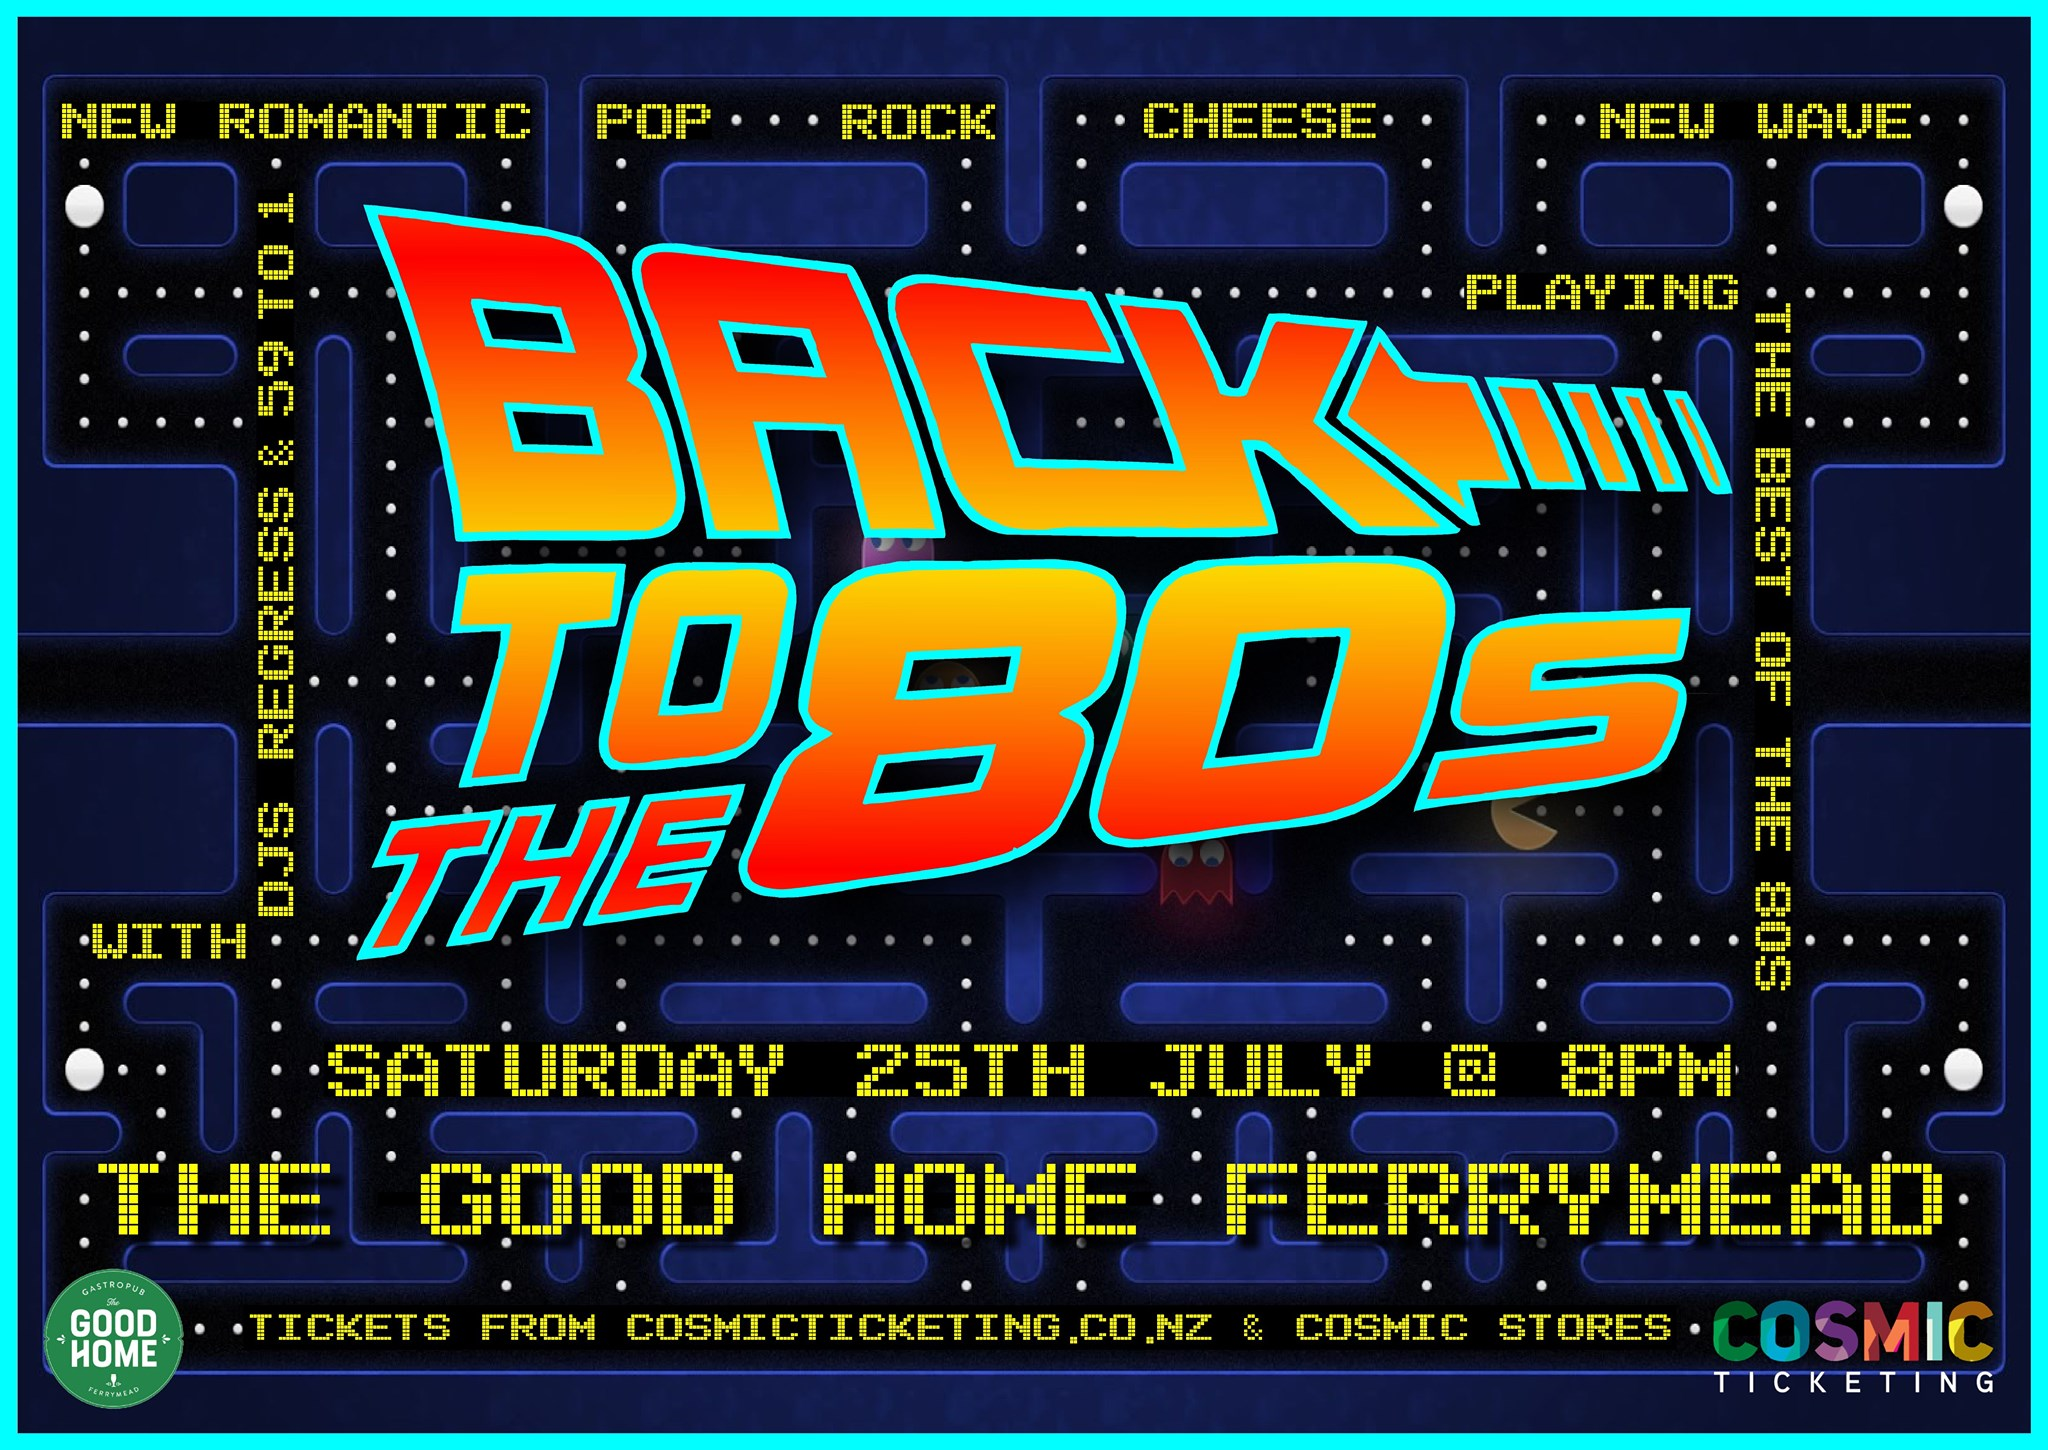 Back to the 80s - Retro music night